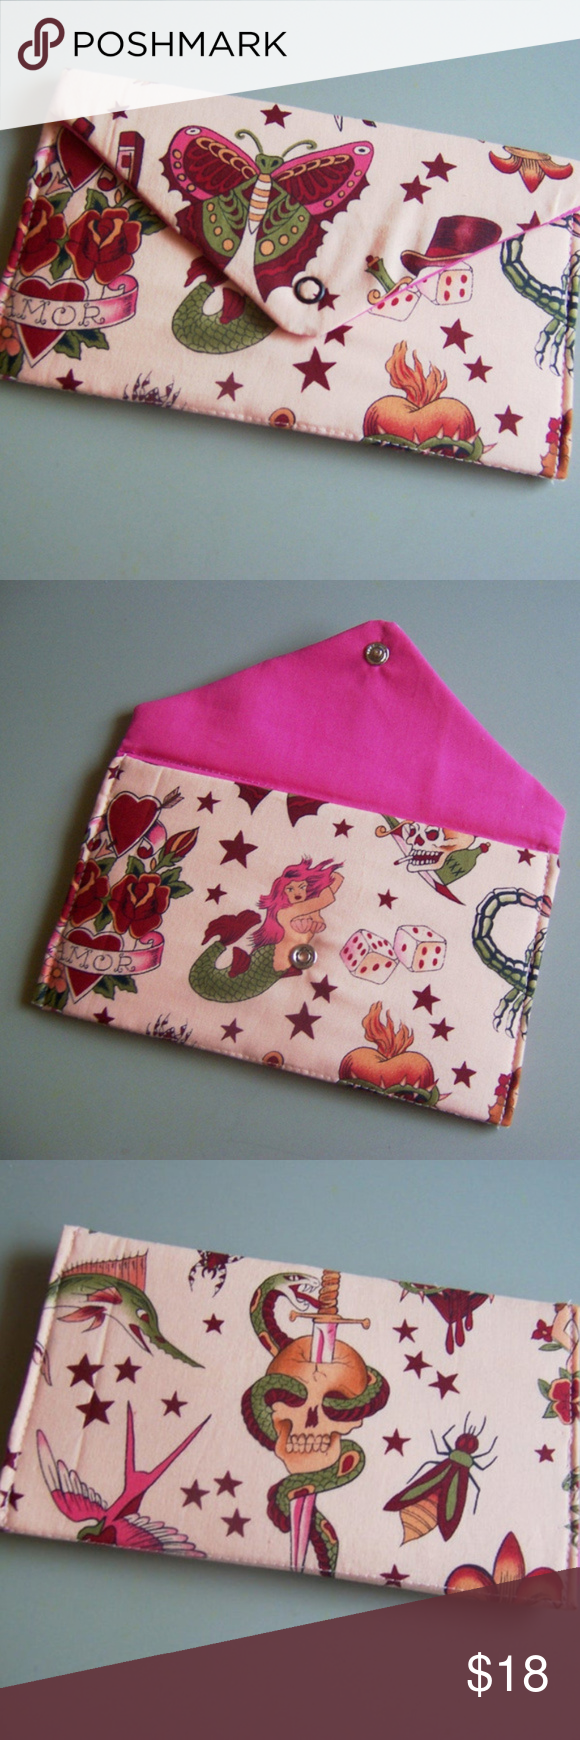 """adorable pink tattoo wallet Clutch Purse adorable pink tattoo wallet Clutch Purse    this handmade wallet is so cute! the tattoo pattern theme reminds me of Sailor Jim or Ed Hardy type of tattoos. there are tons of images, butterflies, mermaids, dice, amor hearts, skull, snake & sword, flies, swallows, swordfish, and stars! fabric is pink. Measures approx. 8"""" wide x 5"""" tall Nice stiff wallet with snap closure Coordinating cotton fabric on inside and outside. Bags Wallets"""